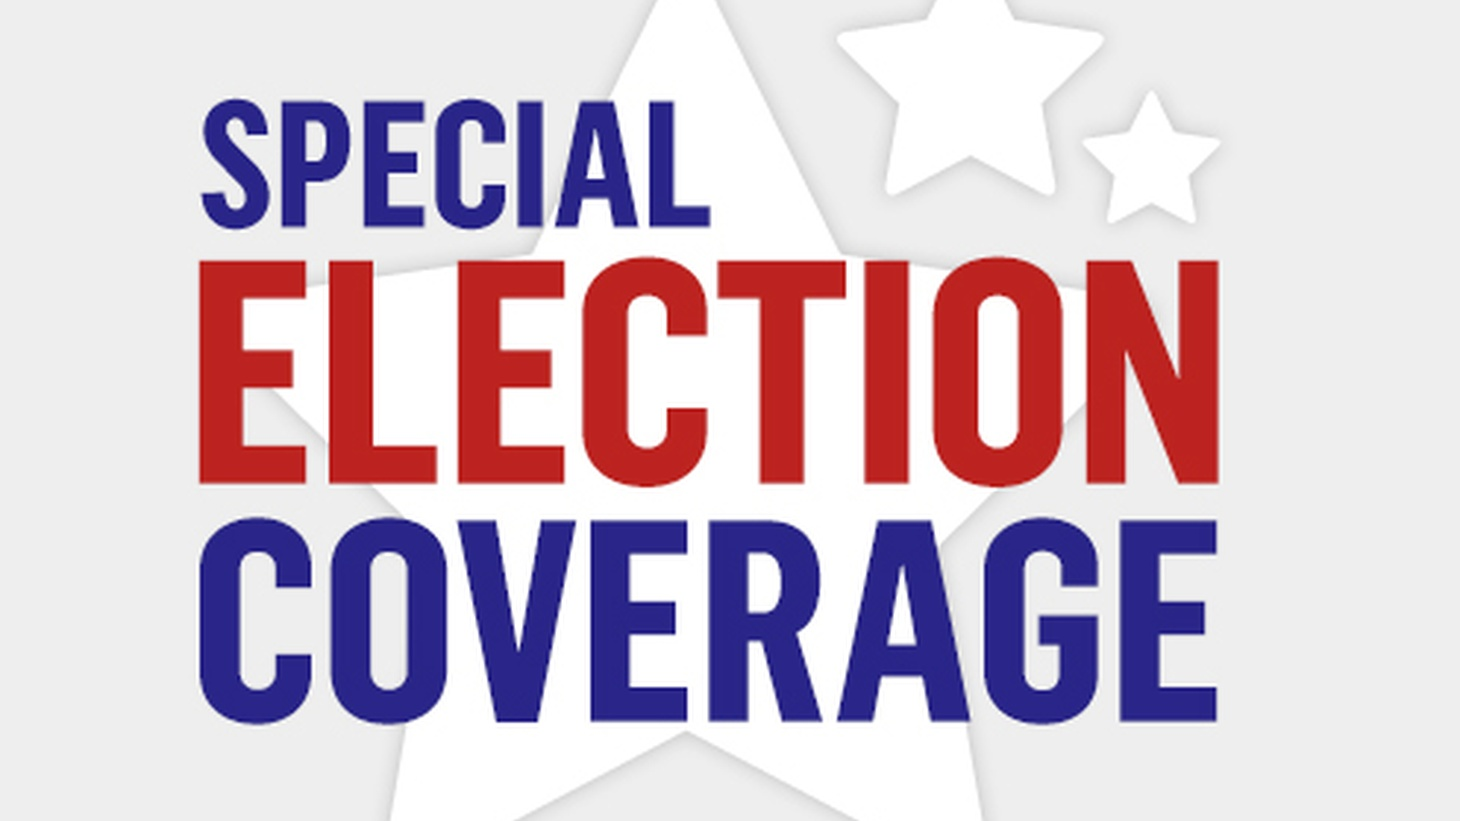 Ongoing election coverage, focusing on the California primary, on Tuesday, June 7 from 8-10pm.